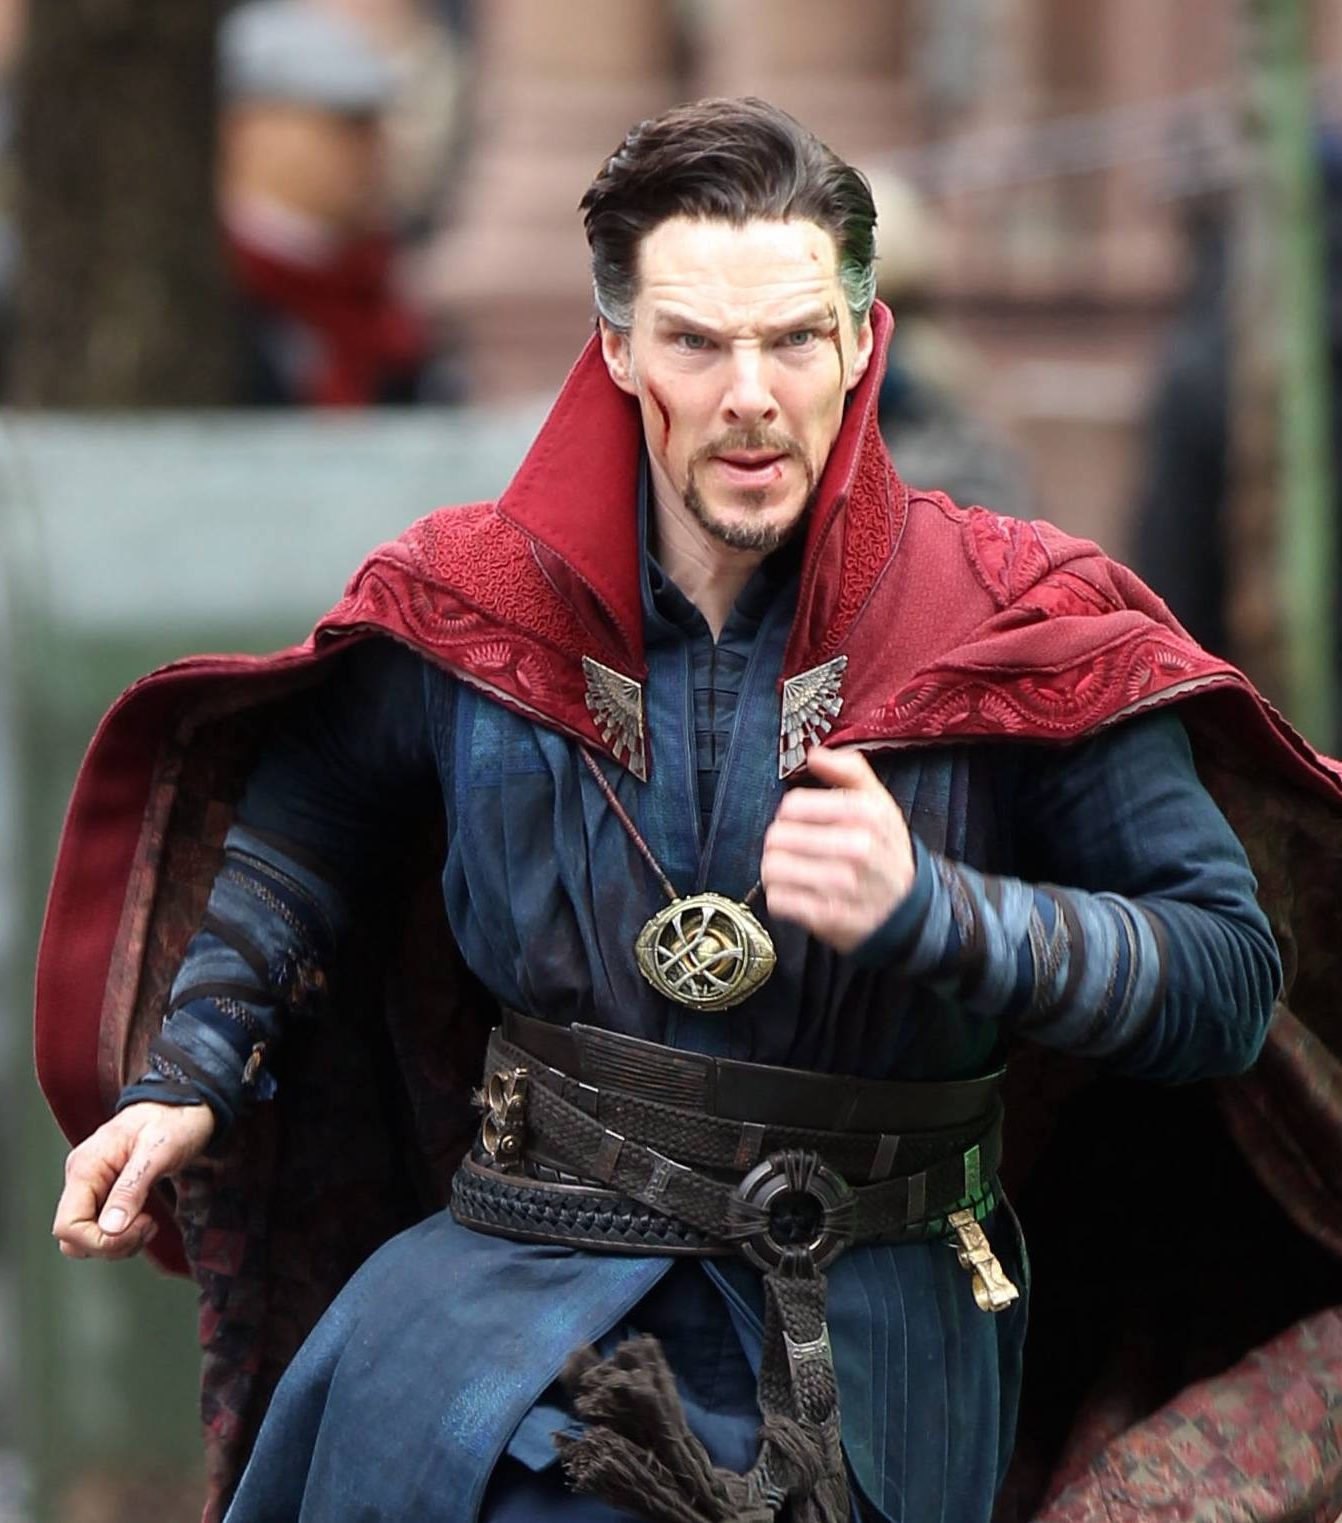 benedict 9 e1558352321562 20 Things You Probably Never Knew About Benedict Cumberbatch